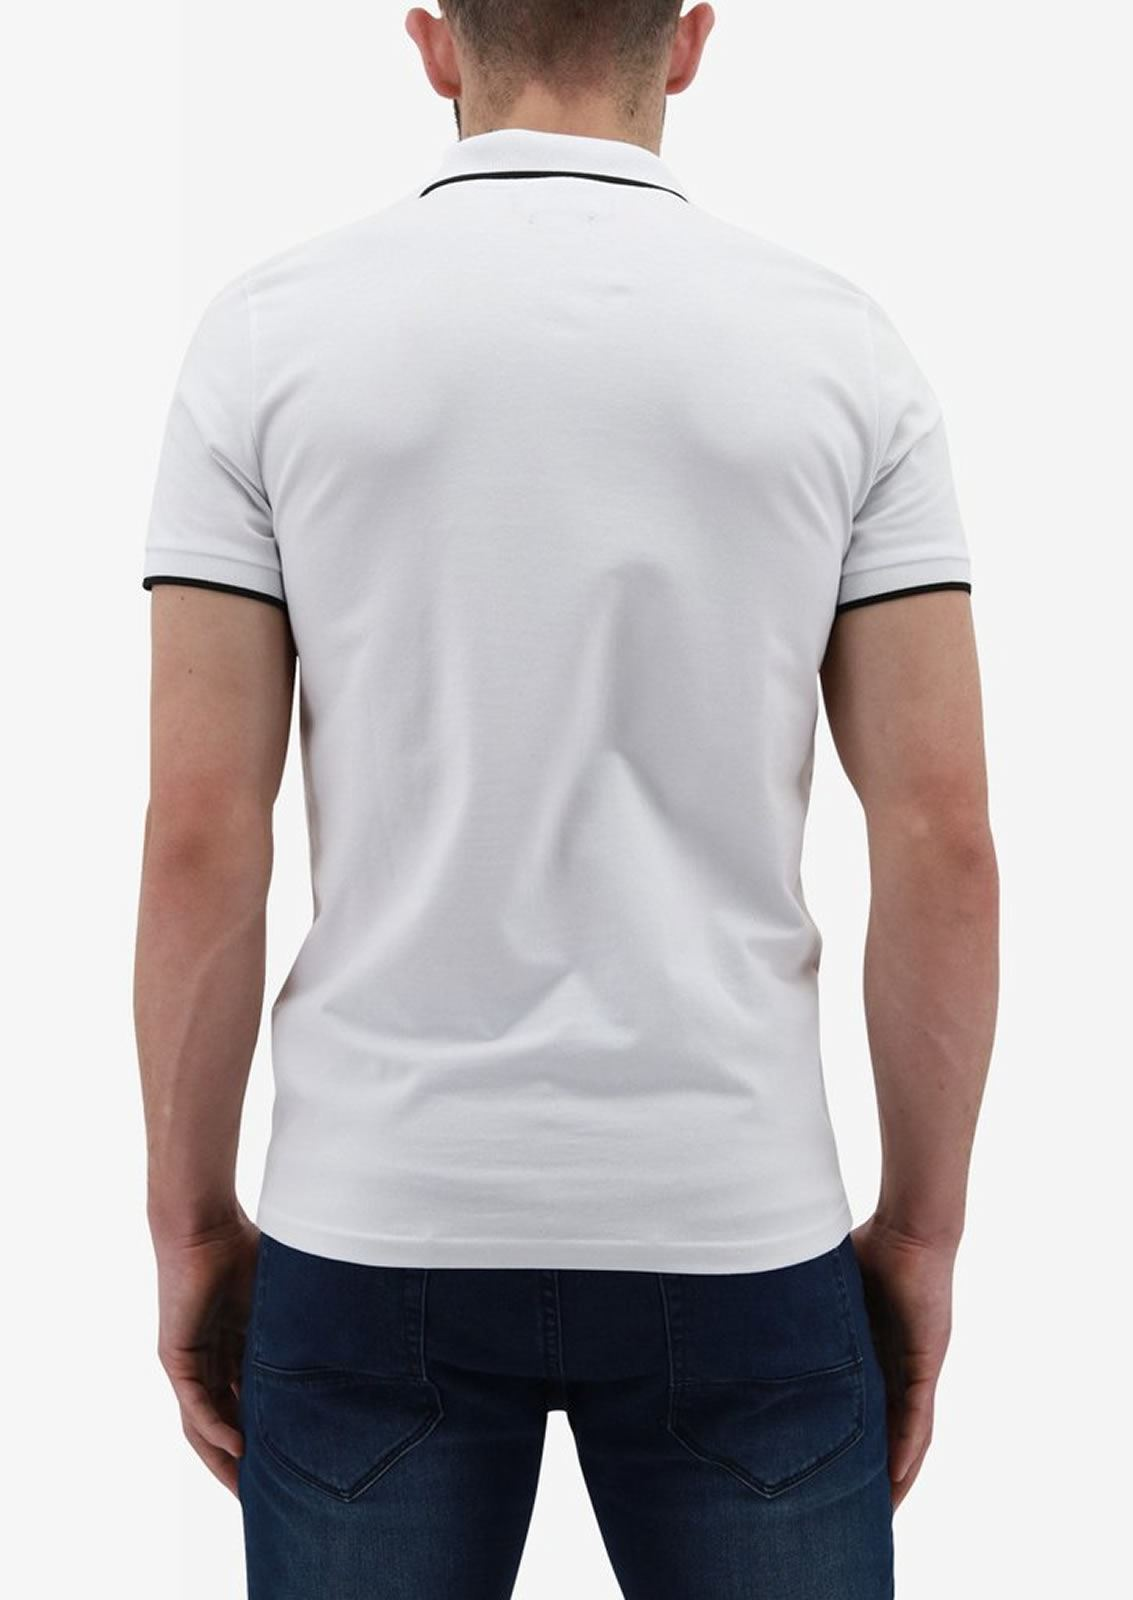 Ne-riche-par-l-039-argent-vetements-Iolite-Homme-Polo-T-Shirt-Cloute-Col-Haut-Decontracte miniature 9